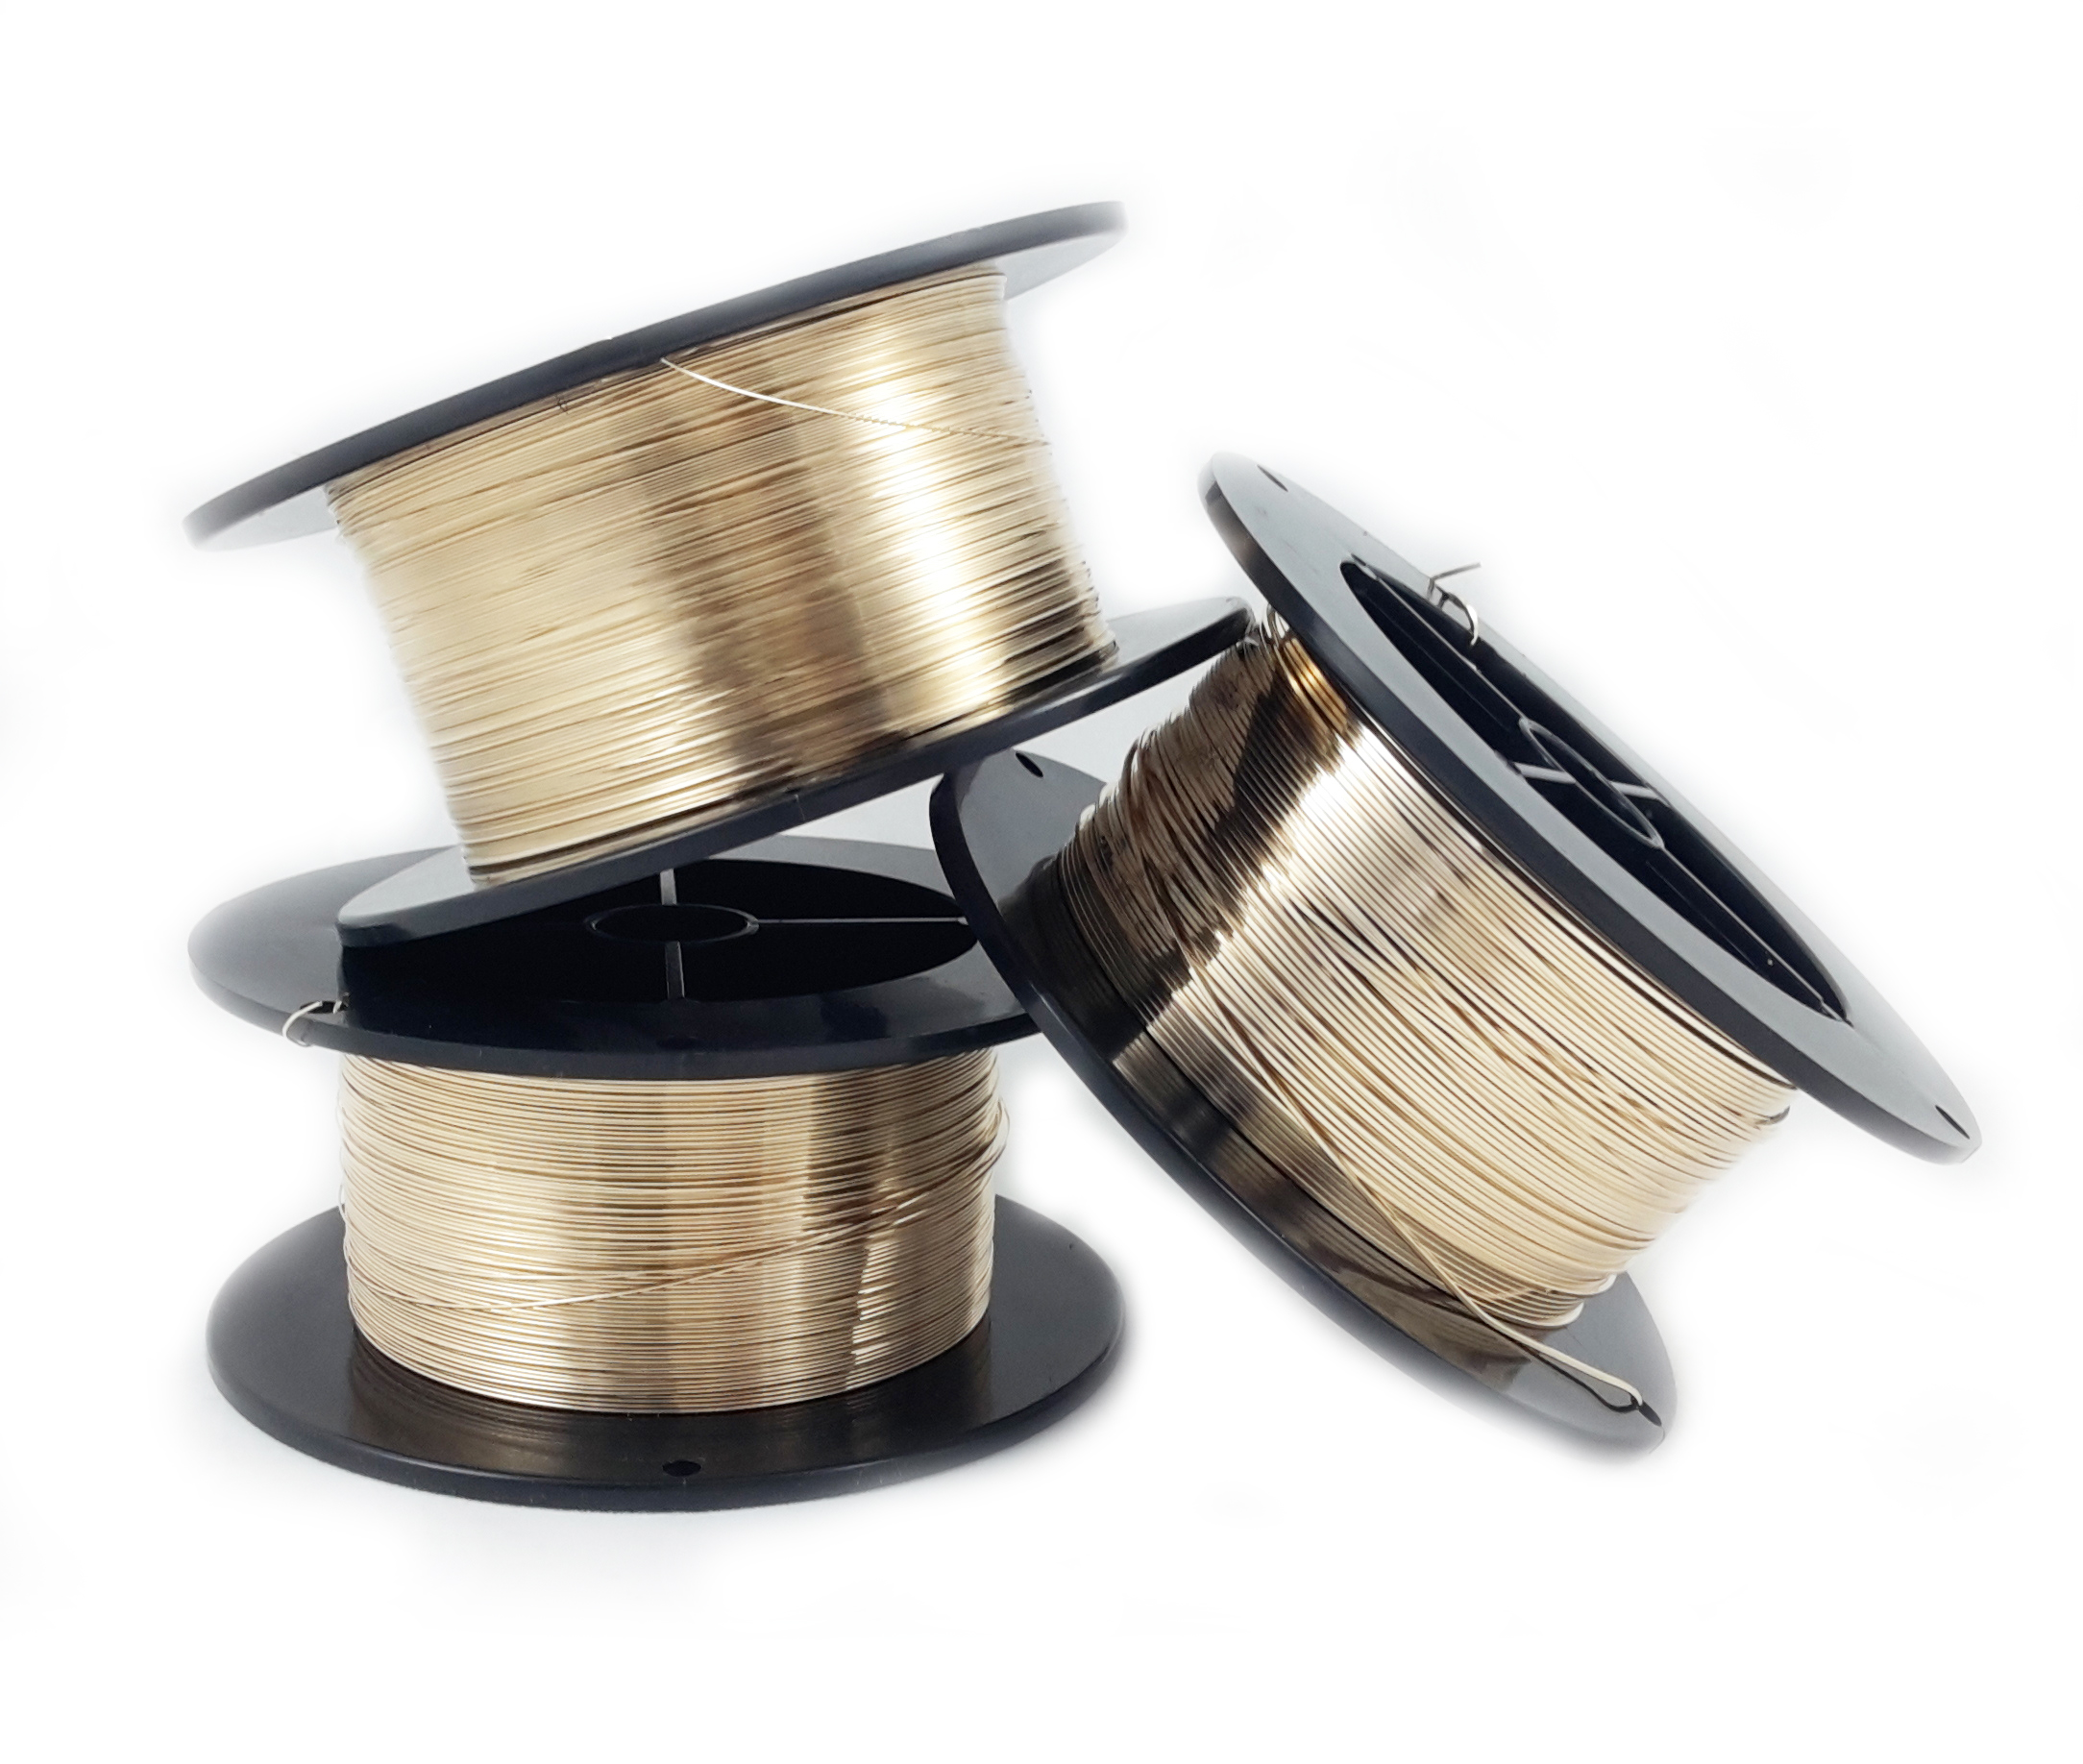 Spool gauges 26 To 16 Bronze Round Wire Dead Soft 1//4 Lb